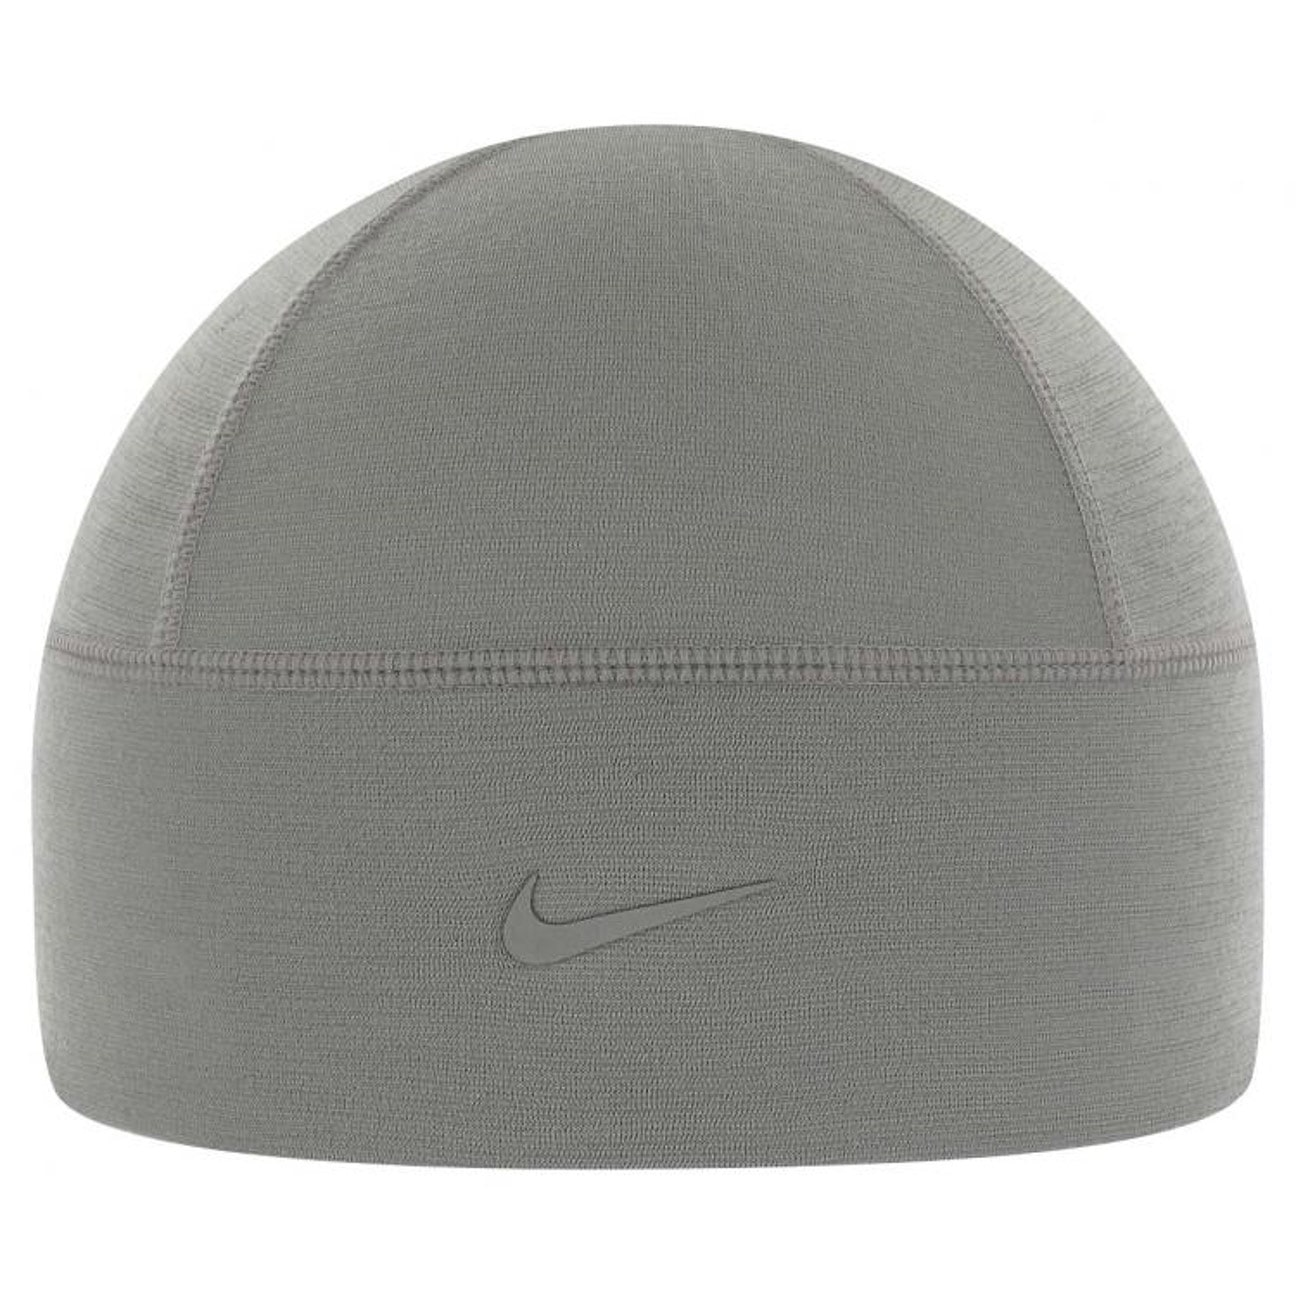 56746169370 Wool Skull Cap by Nike - grey 1 ...